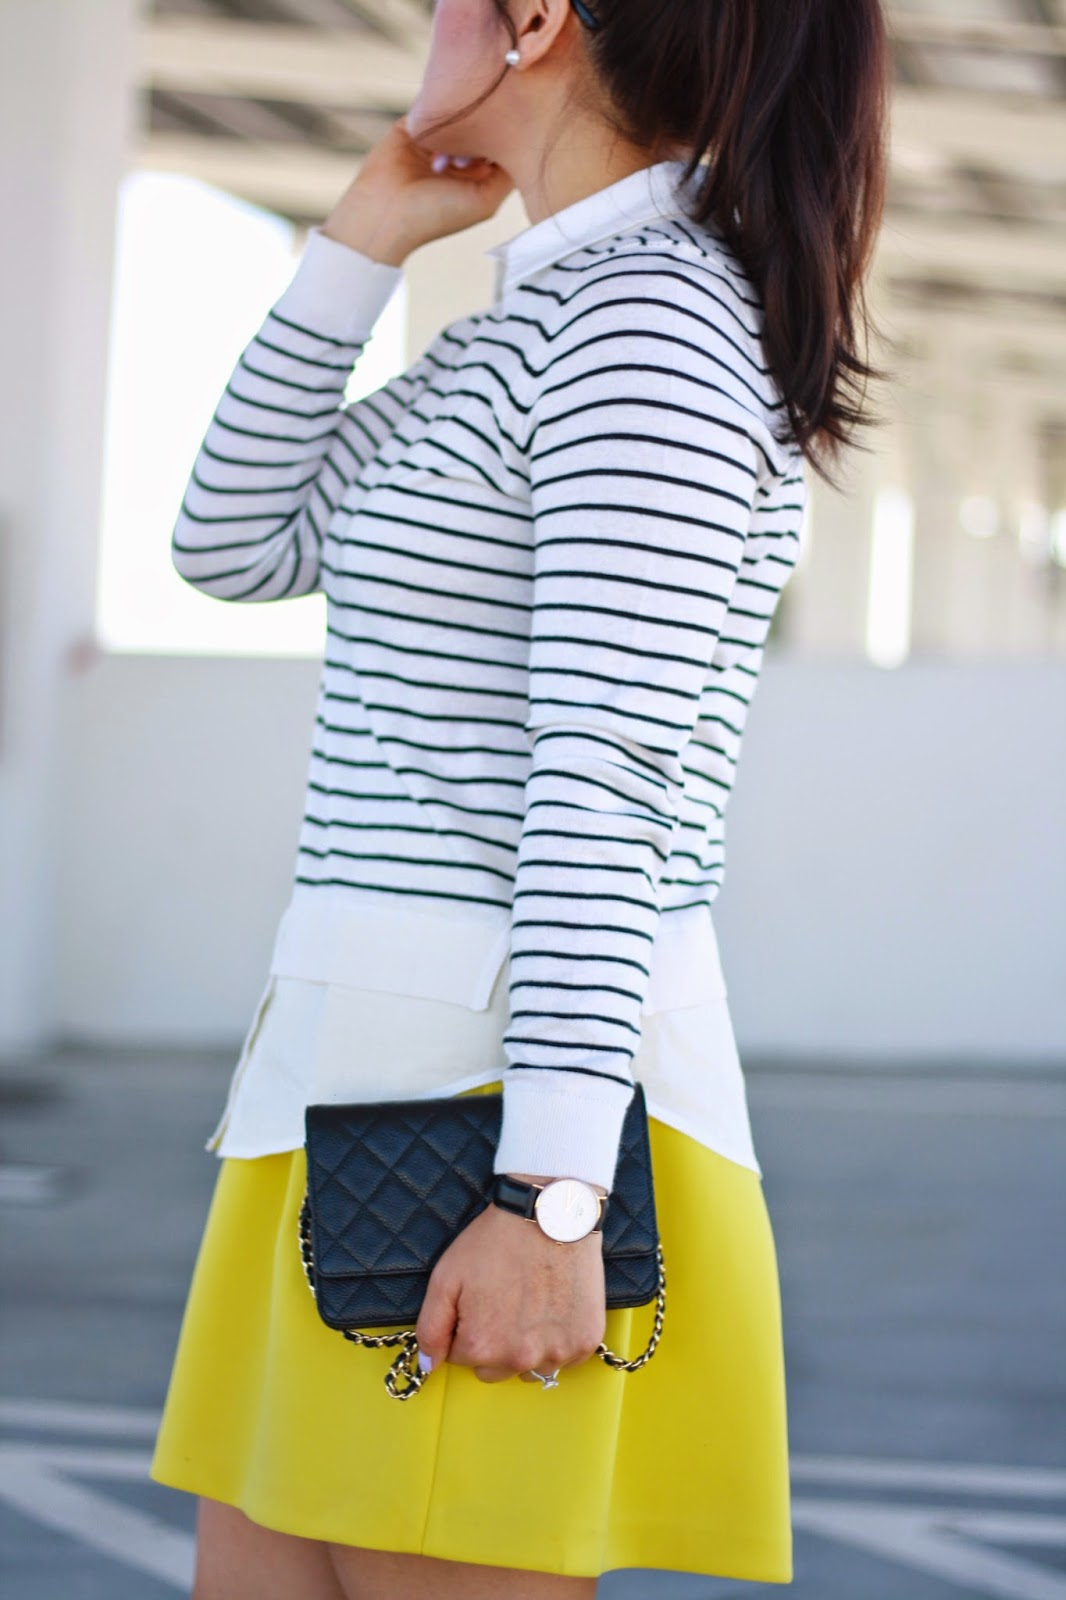 simplyxclassic, orange county blogger, fashion blogger, style, ootd, loft, ann taylor, chanel wallet on a chain, mommy blogger,